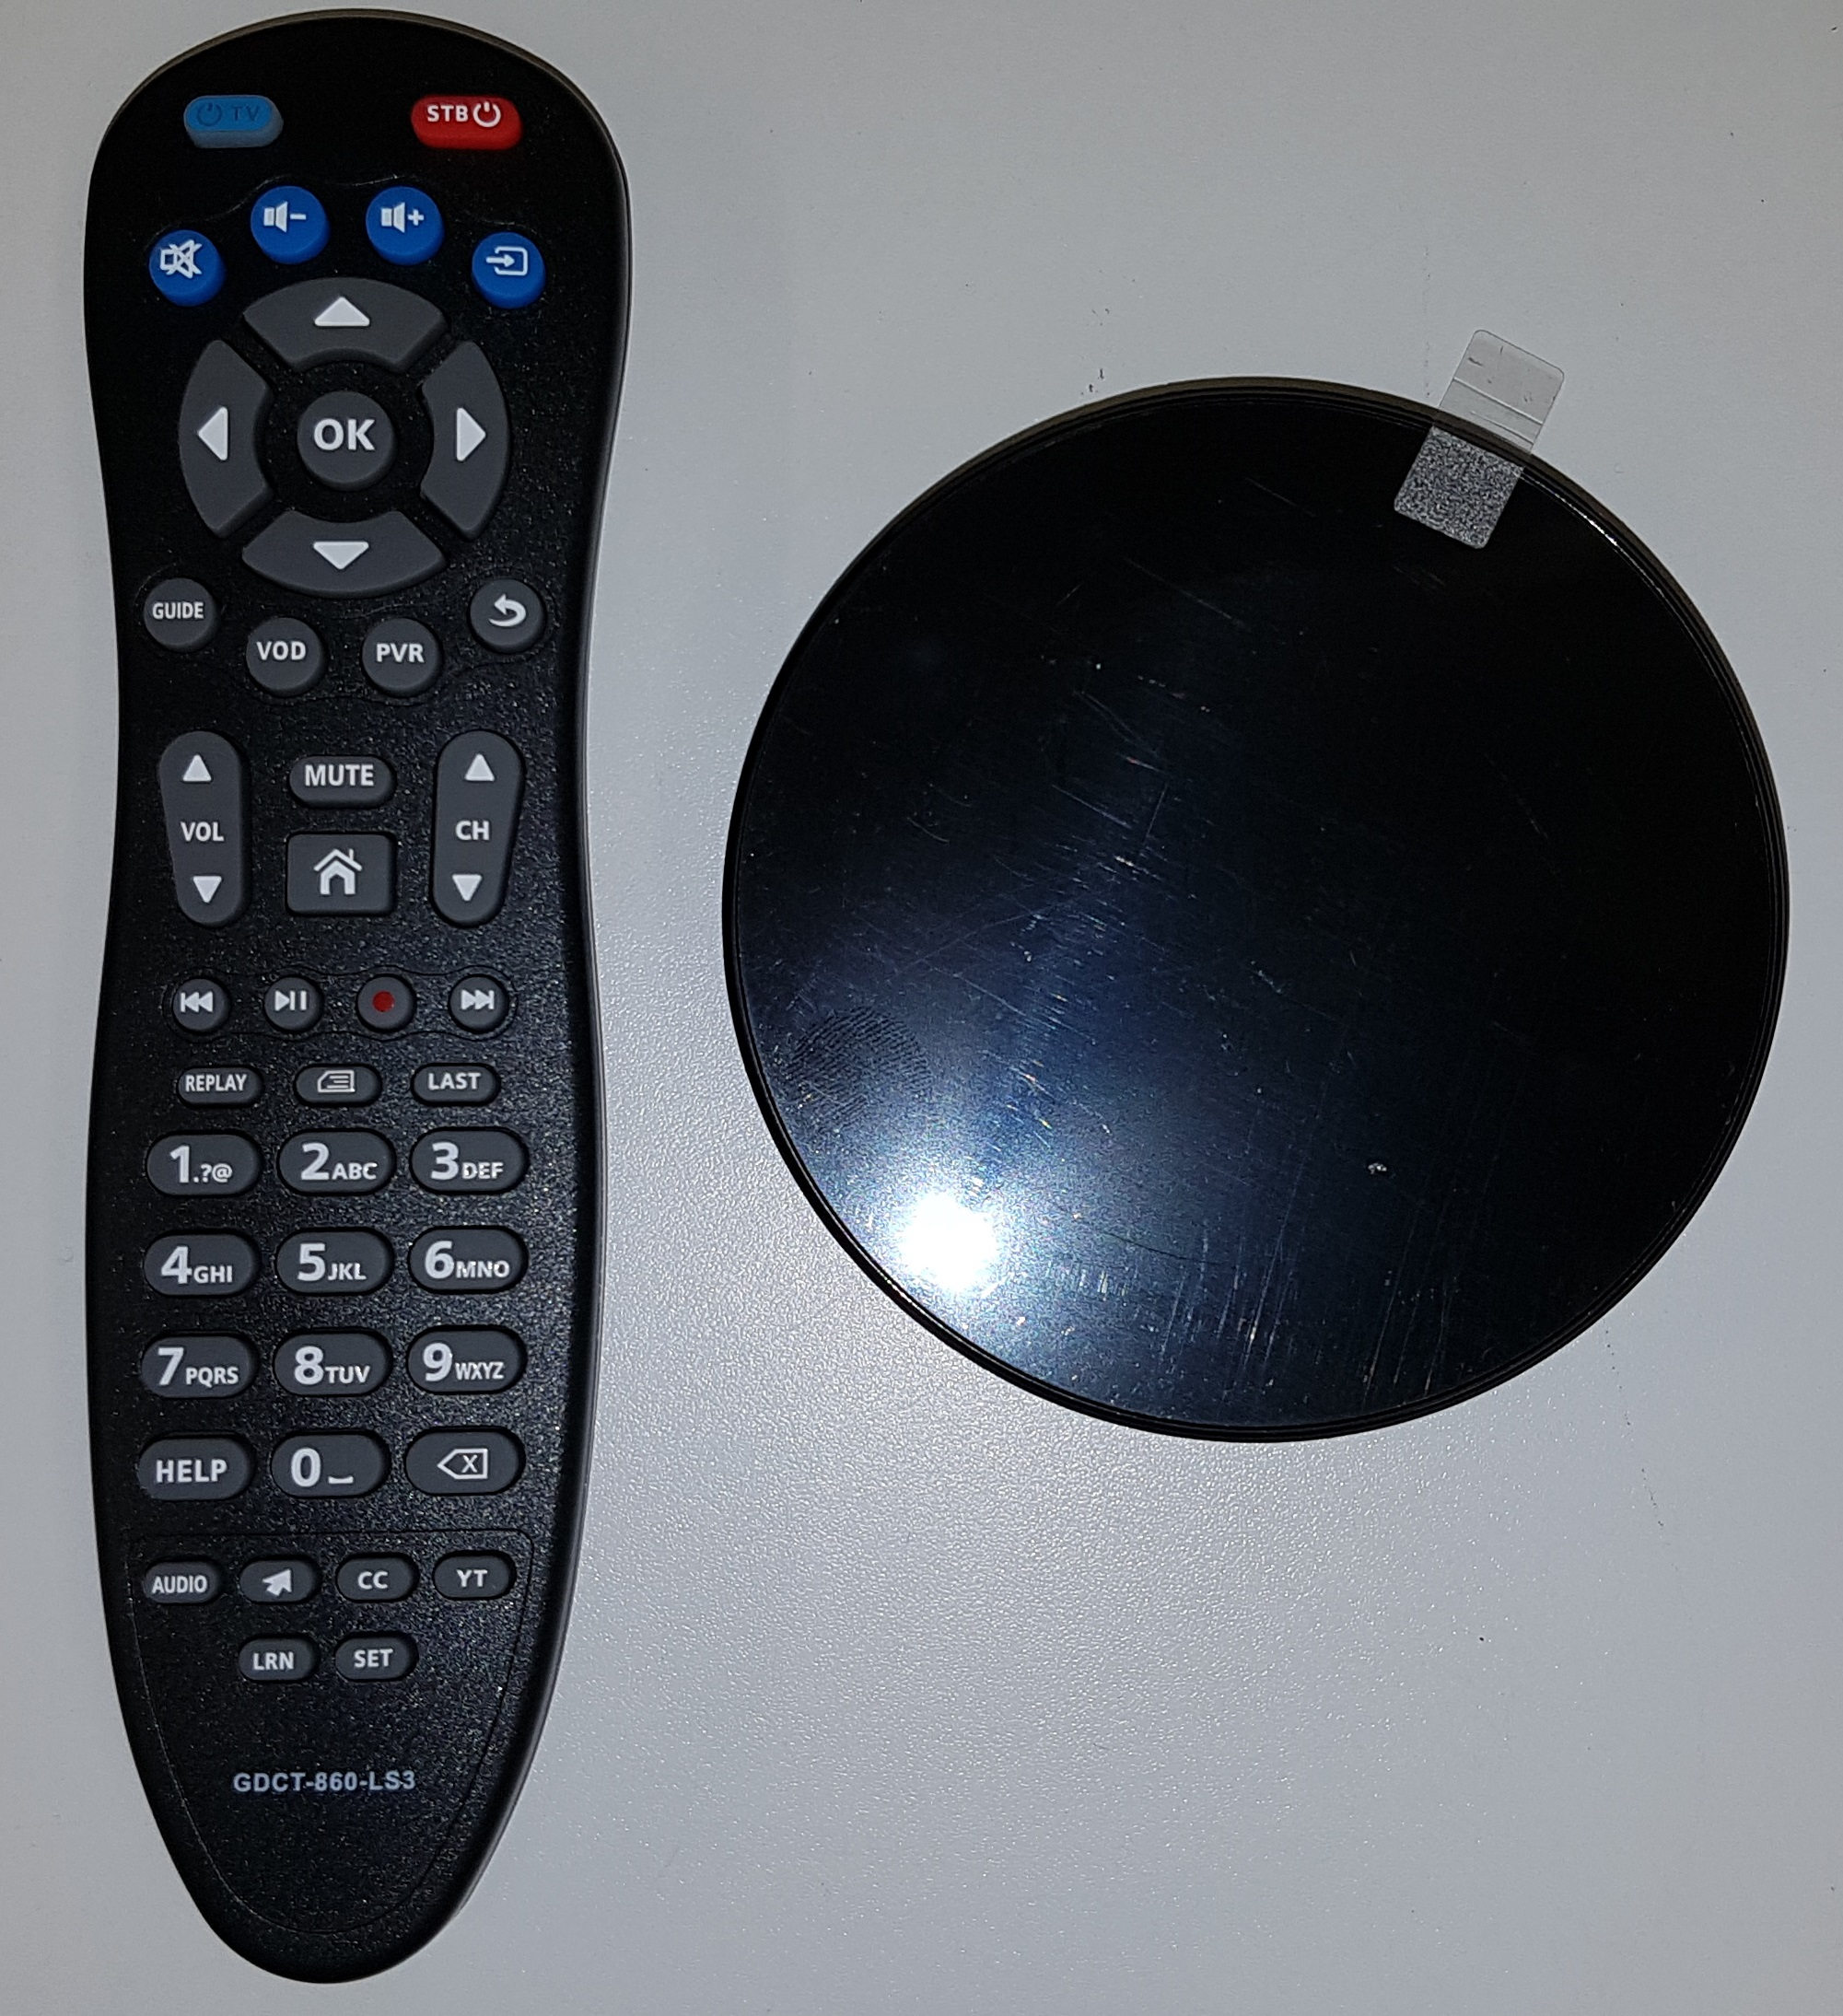 STB with Remote